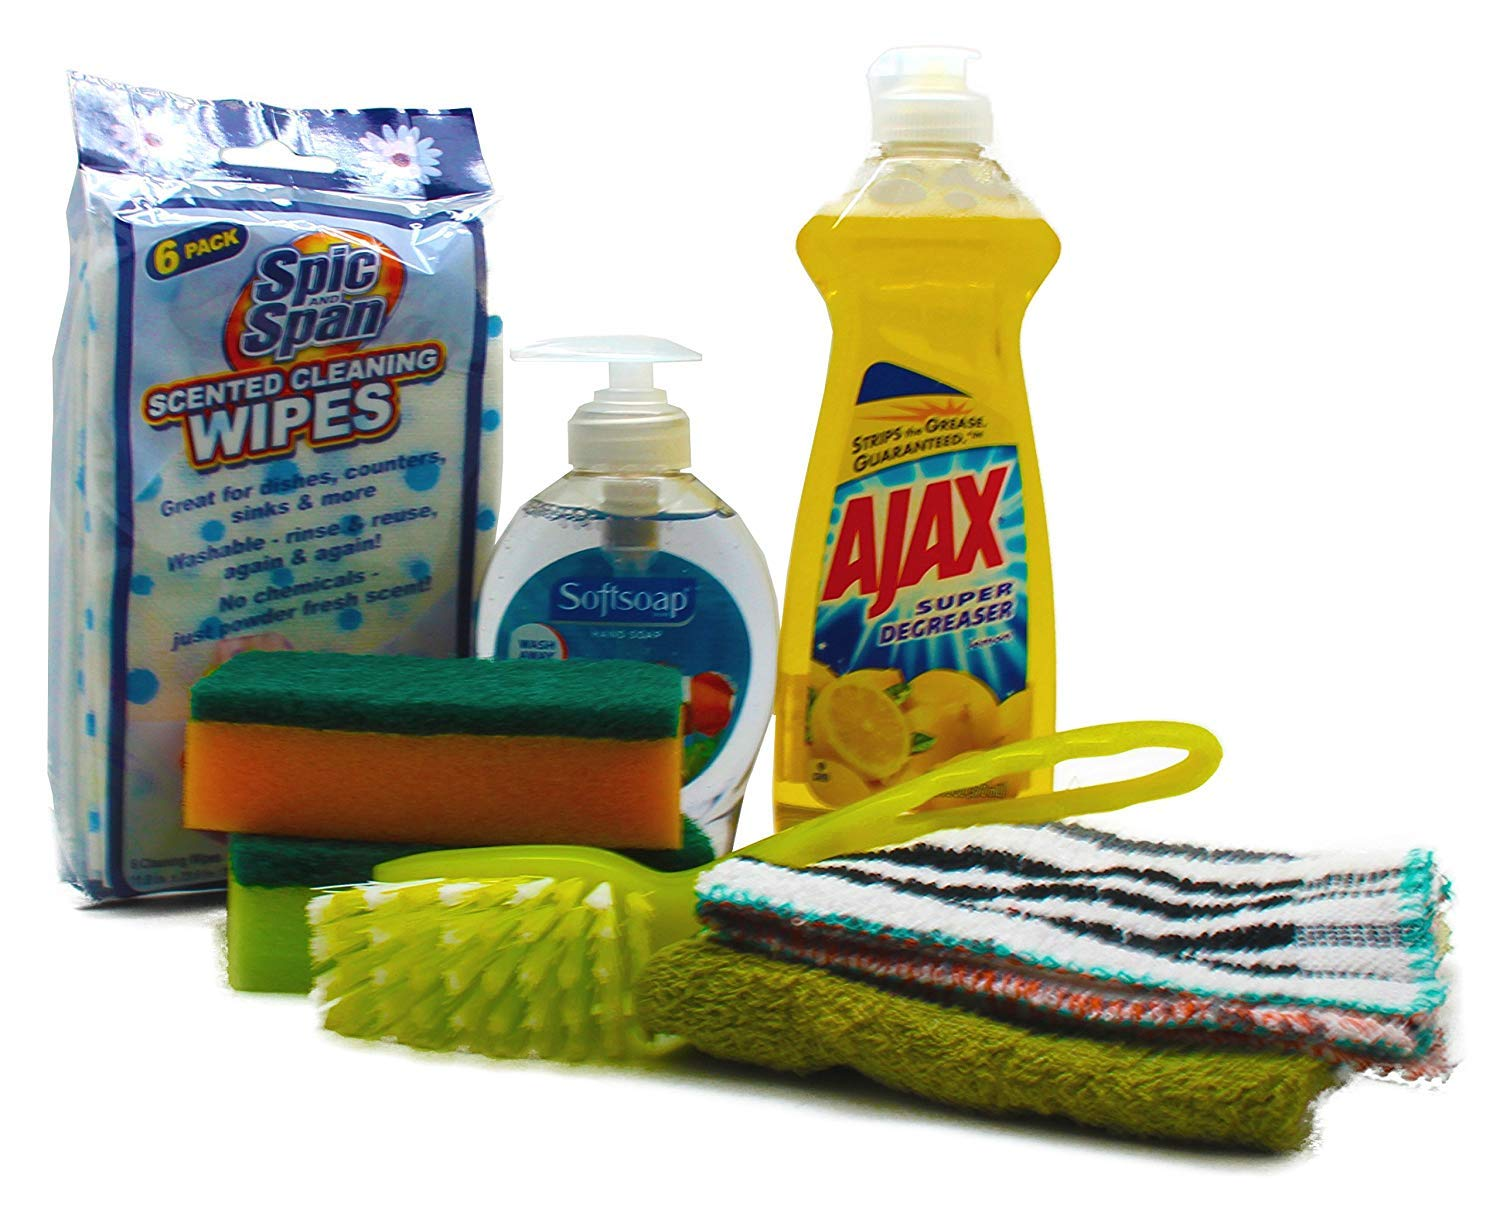 Dorm Room All Inclusive Kitchen Cleaning Kit with Ajax, Sponges, Soap Hand  Wash & More